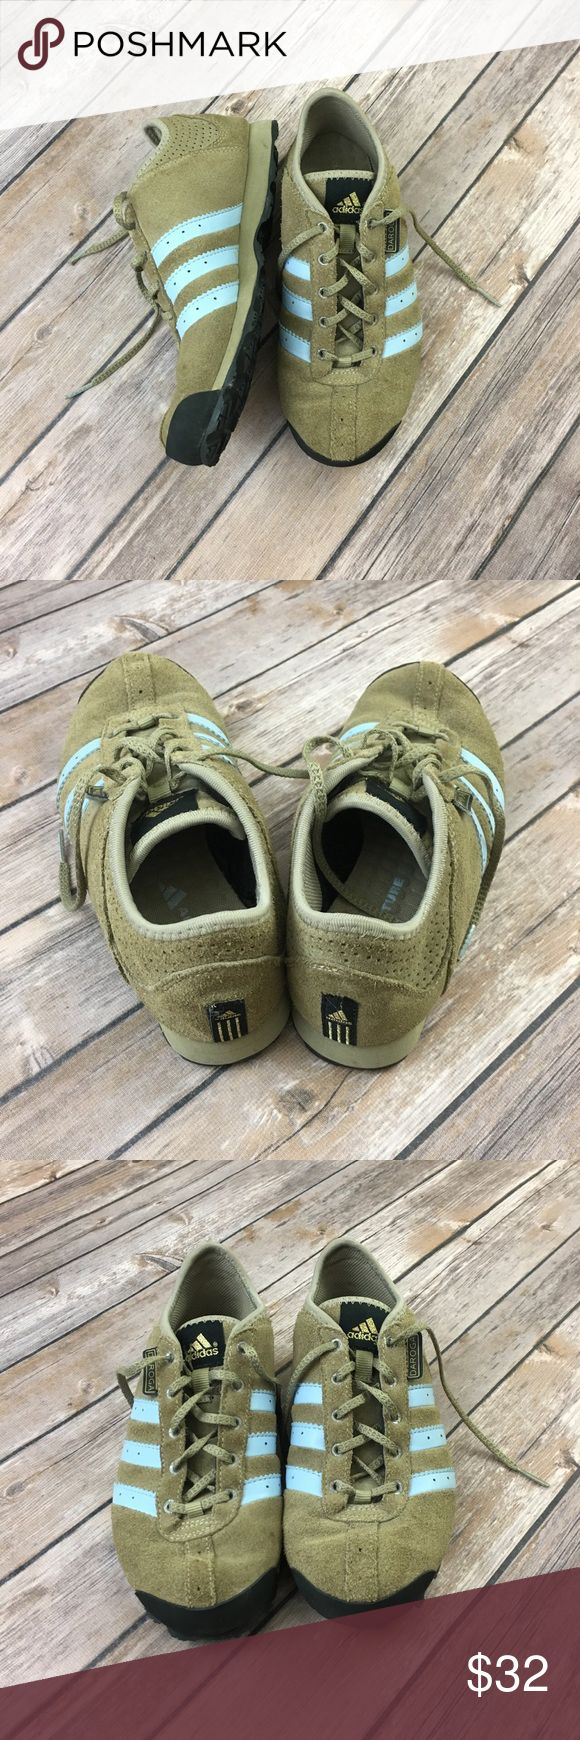 Adidas Daroga women's size 6 like new Only worn a few time! Women's size 6. I love these and the color! Get these quick. Cross posted. Adidas Shoes Athletic Shoes